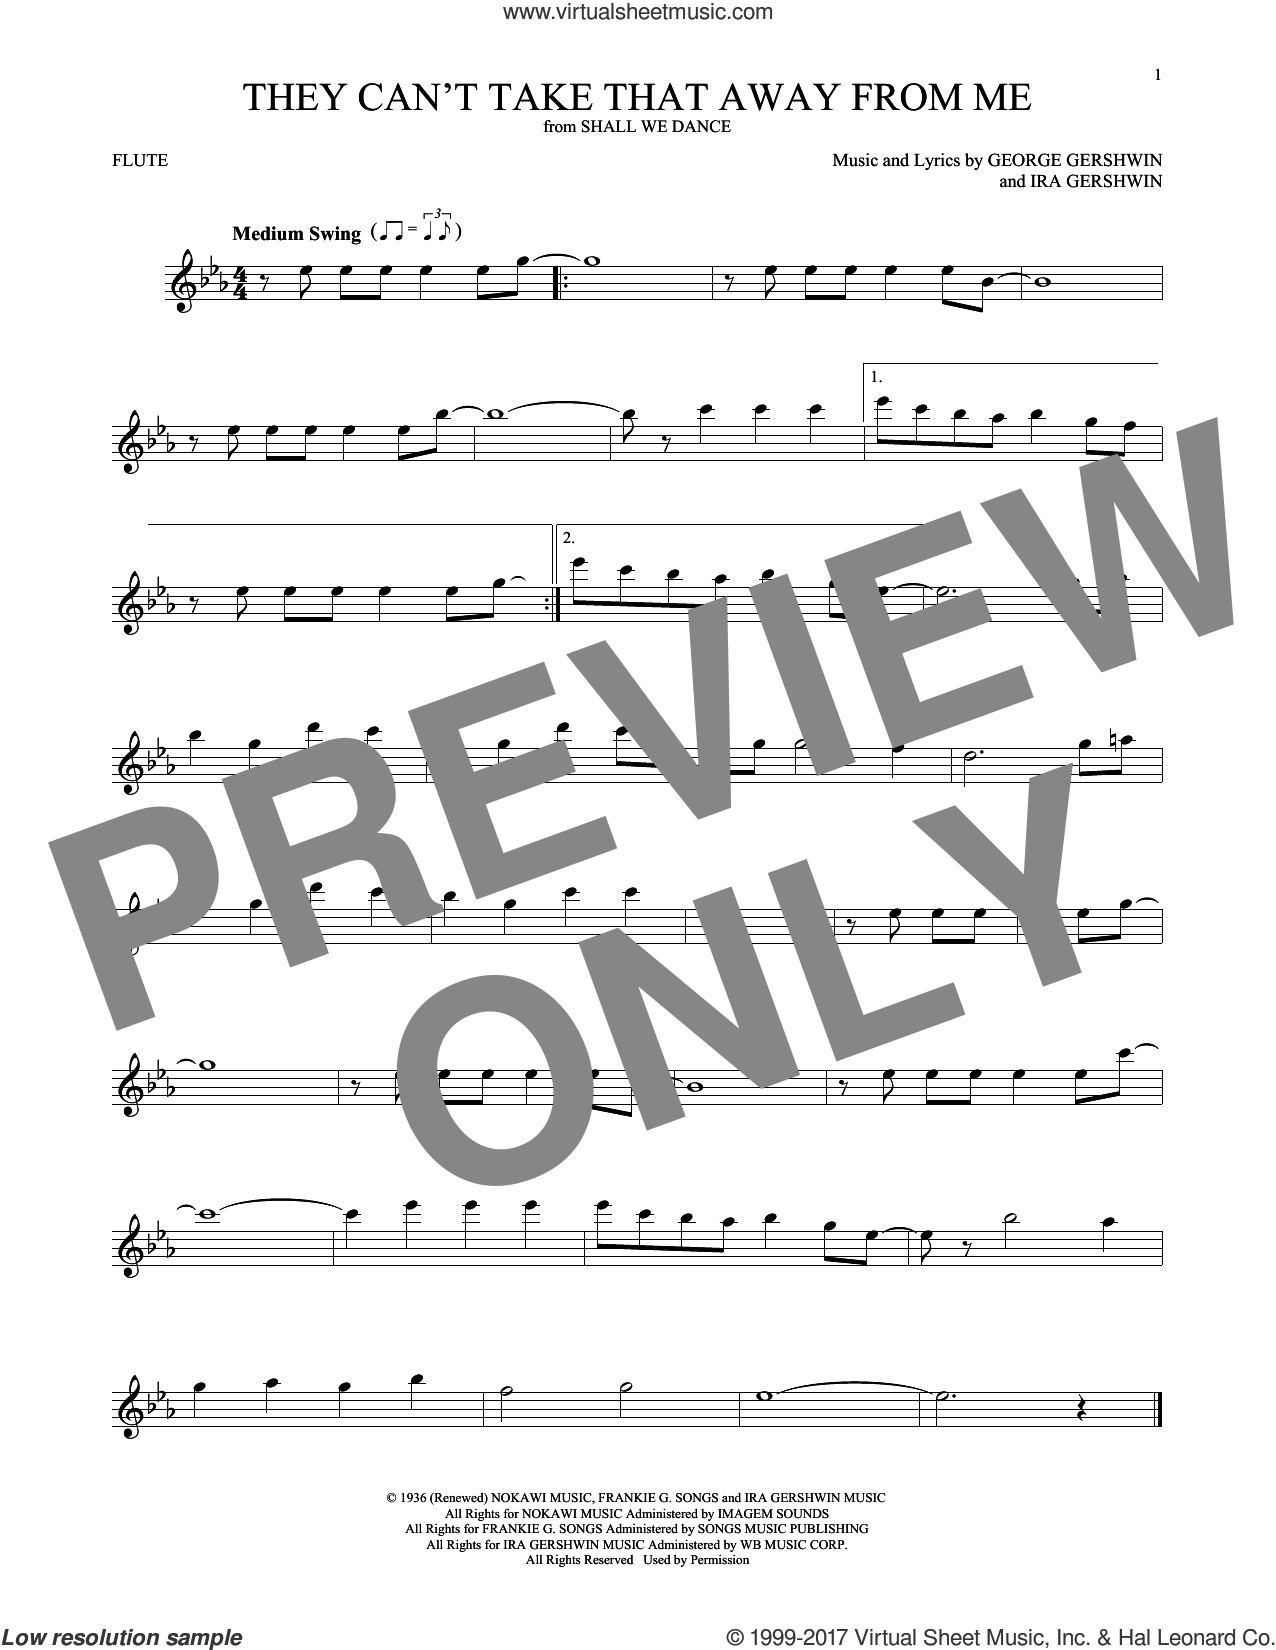 They Can't Take That Away From Me sheet music for flute solo by Frank Sinatra, George Gershwin and Ira Gershwin, intermediate skill level